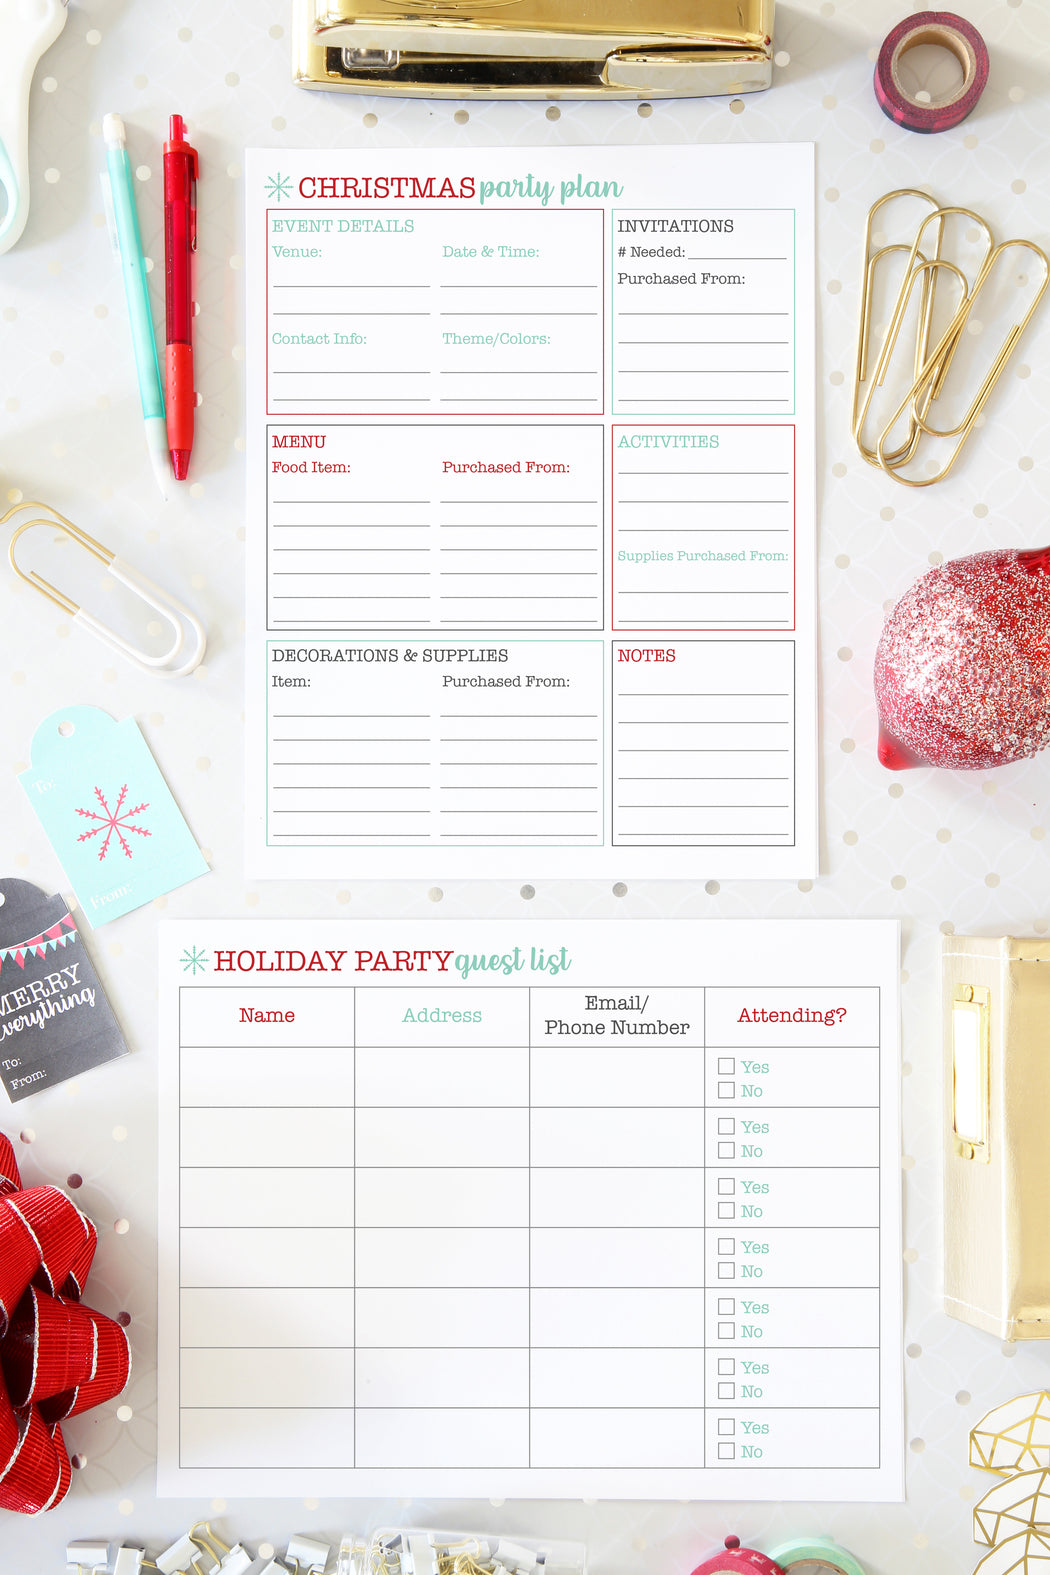 Deluxe Christmas Planner / Holiday Planner